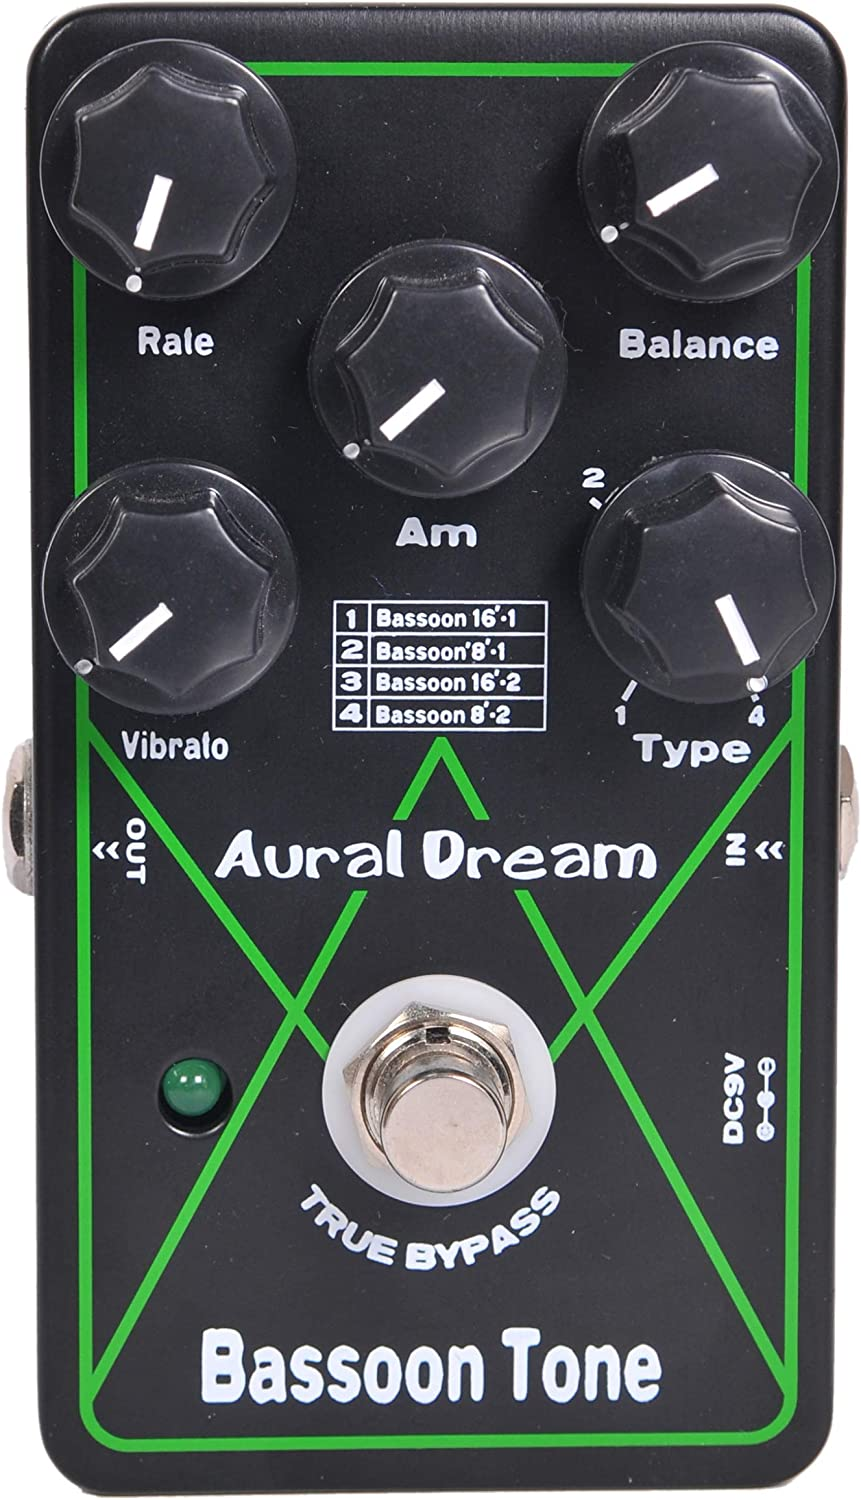 Aural Dream Bassoon Tone Synthesizer Guitar Effects Pedal based on organ includes Bassoon 16'and Bassoon 8'with Vibrato and Swell module,True bypass.